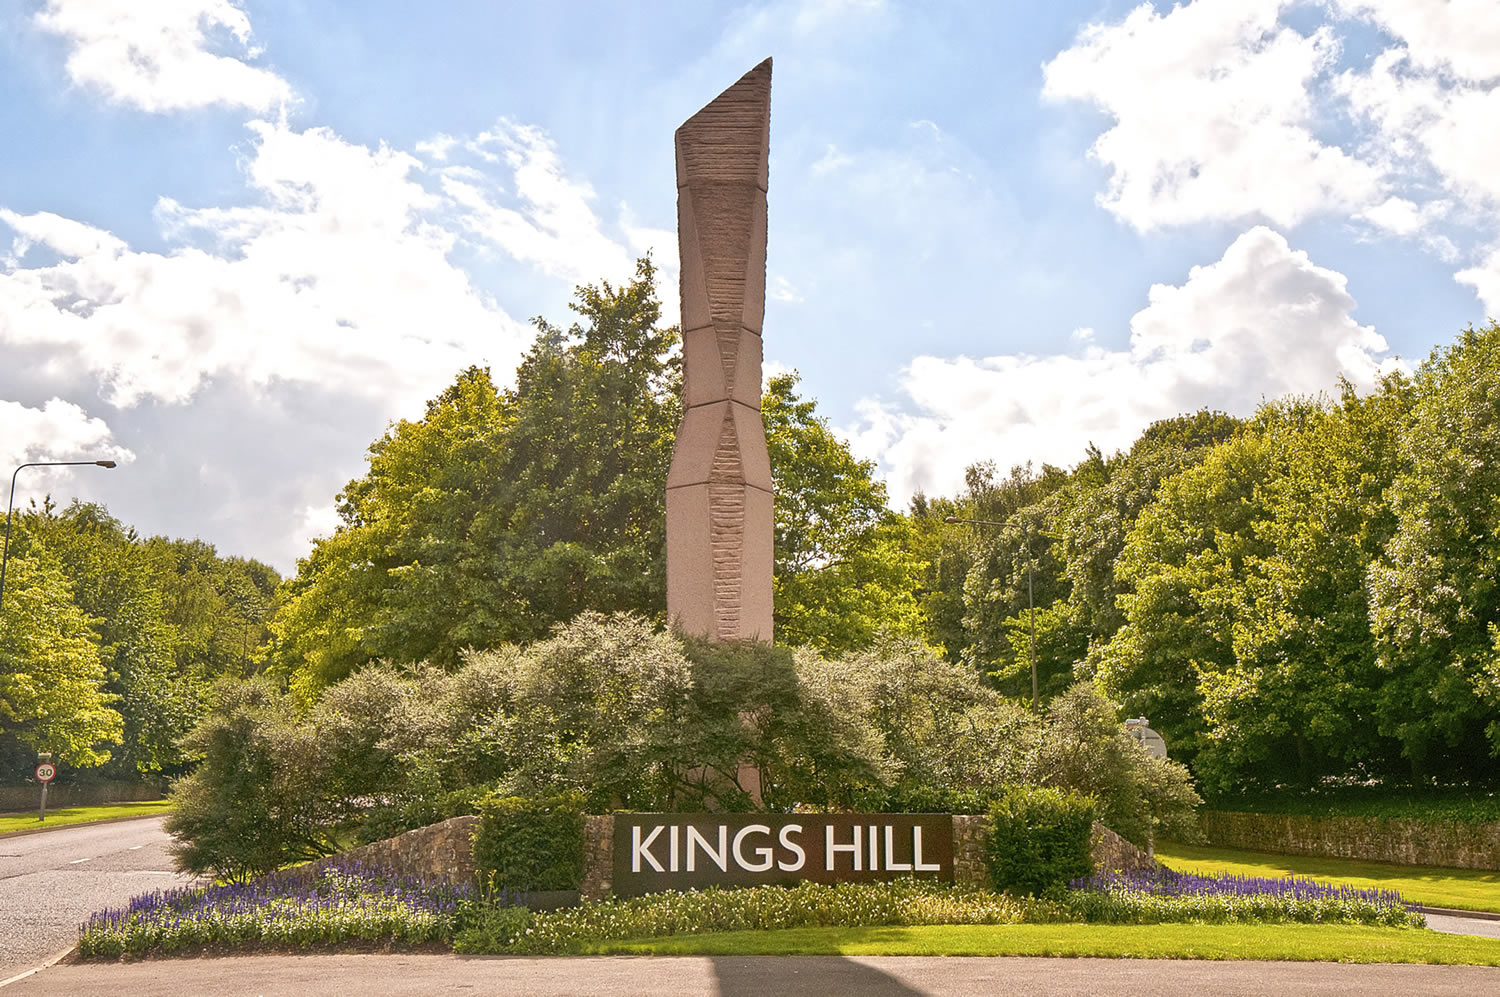 Kingshill City